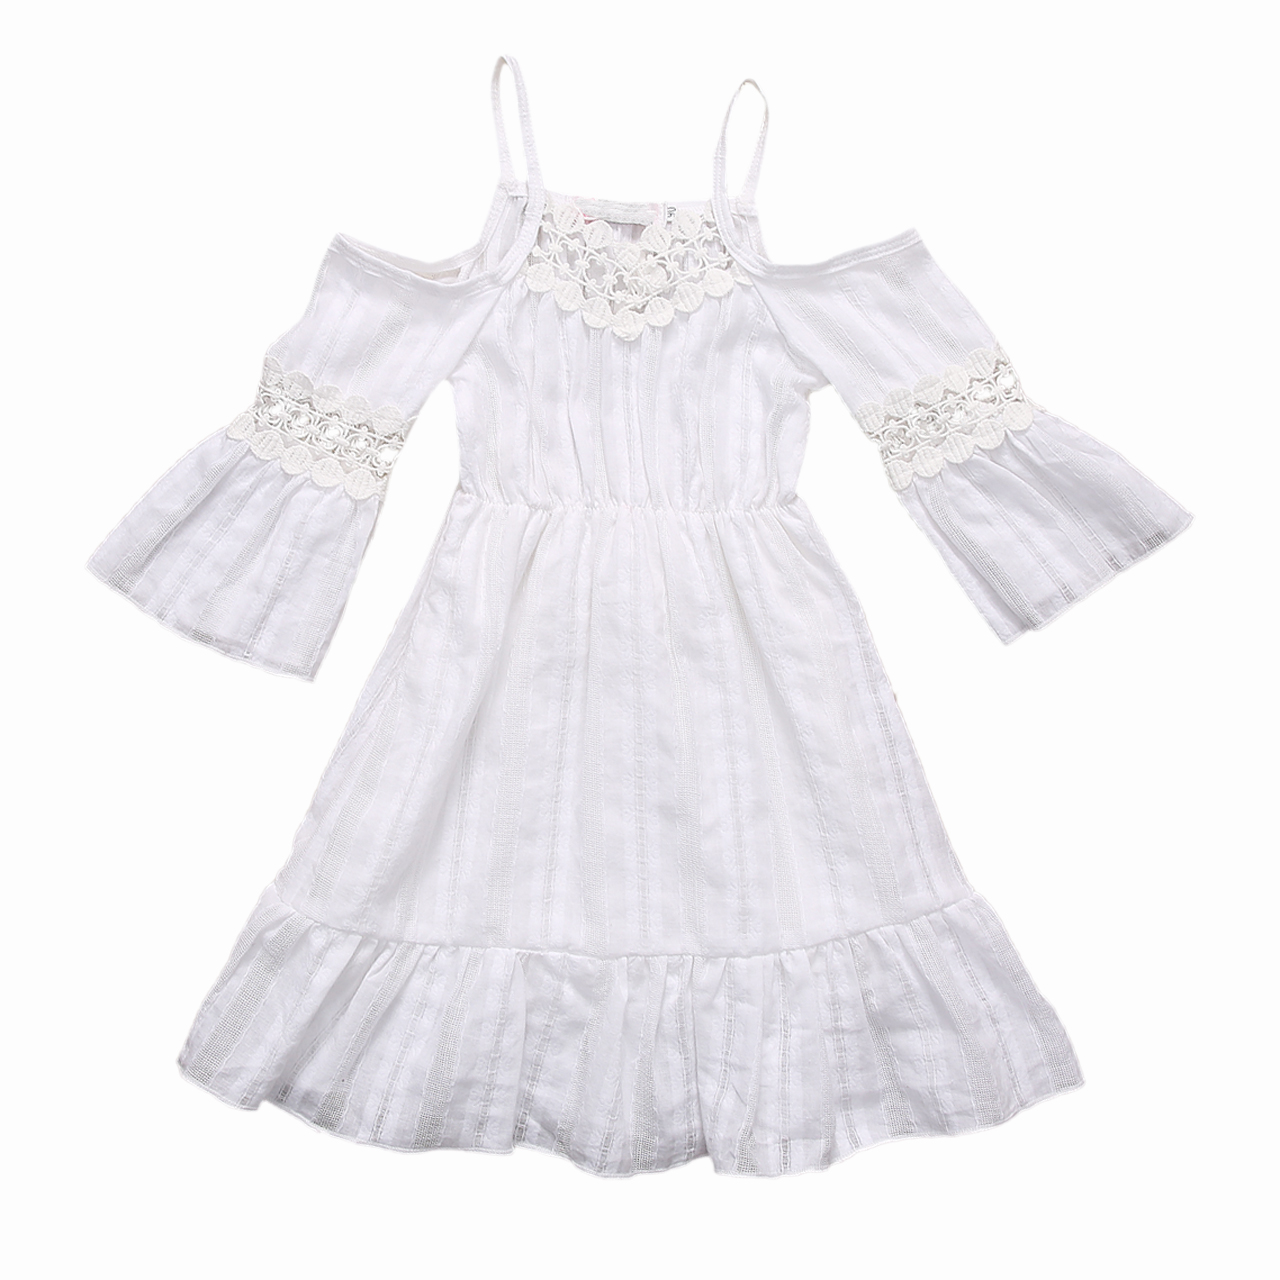 2-7 Flower Girl Princess Dress Summer Kids Baby Party Wedding Pageant Tulle Tutu Dresses tefal e8742344 jamie oliver